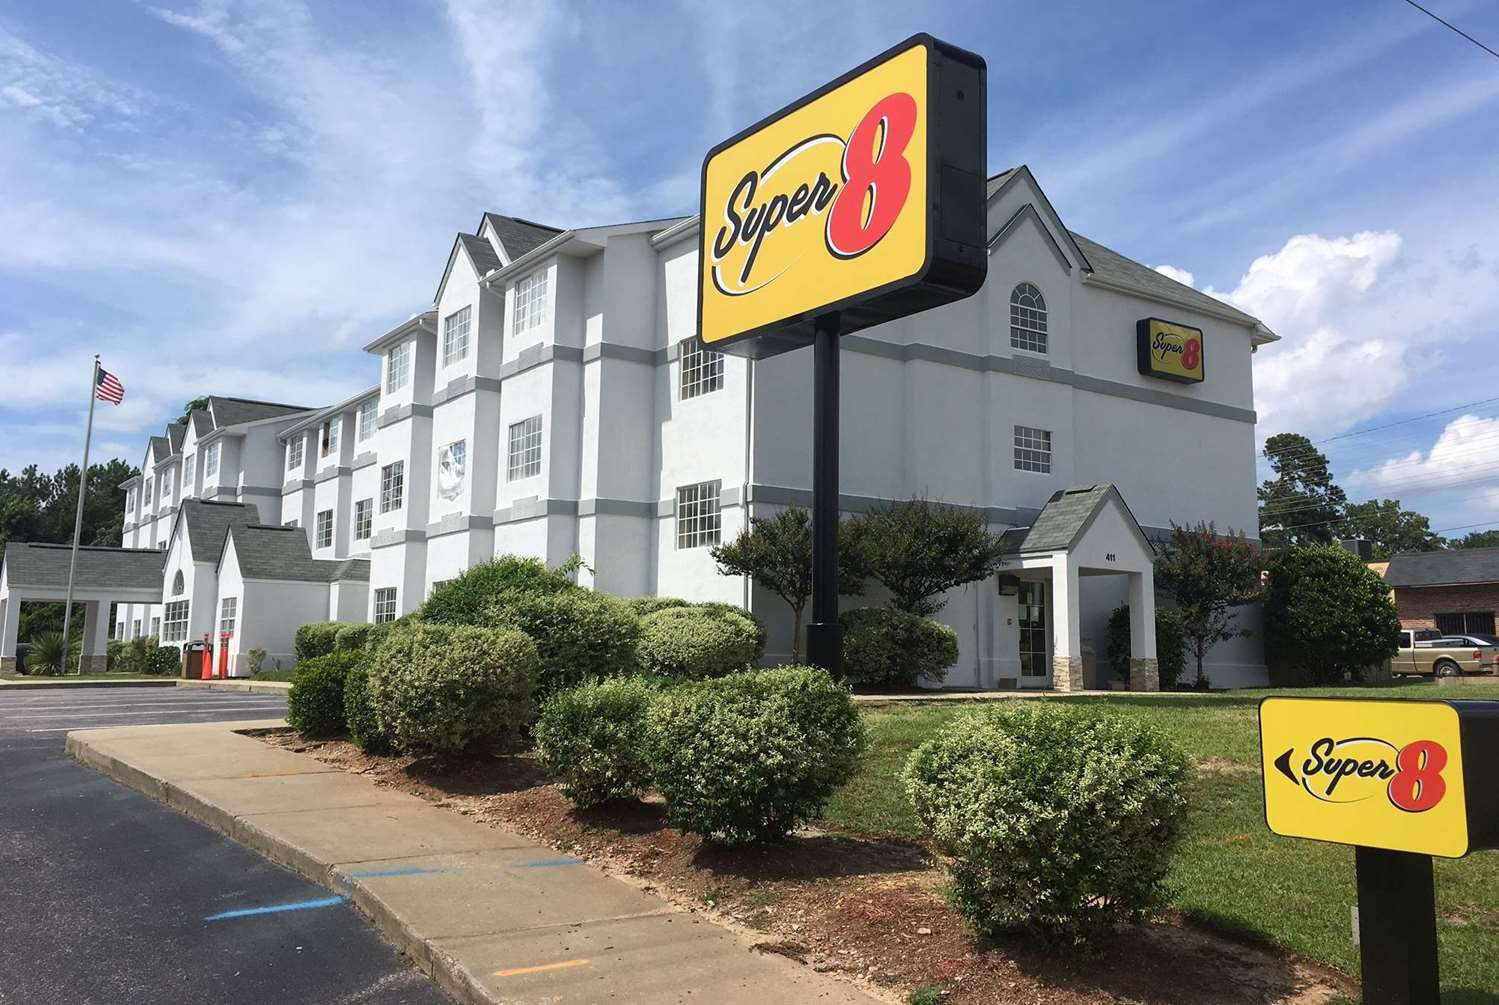 Super 8 Hotel Harbison Columbia, SC